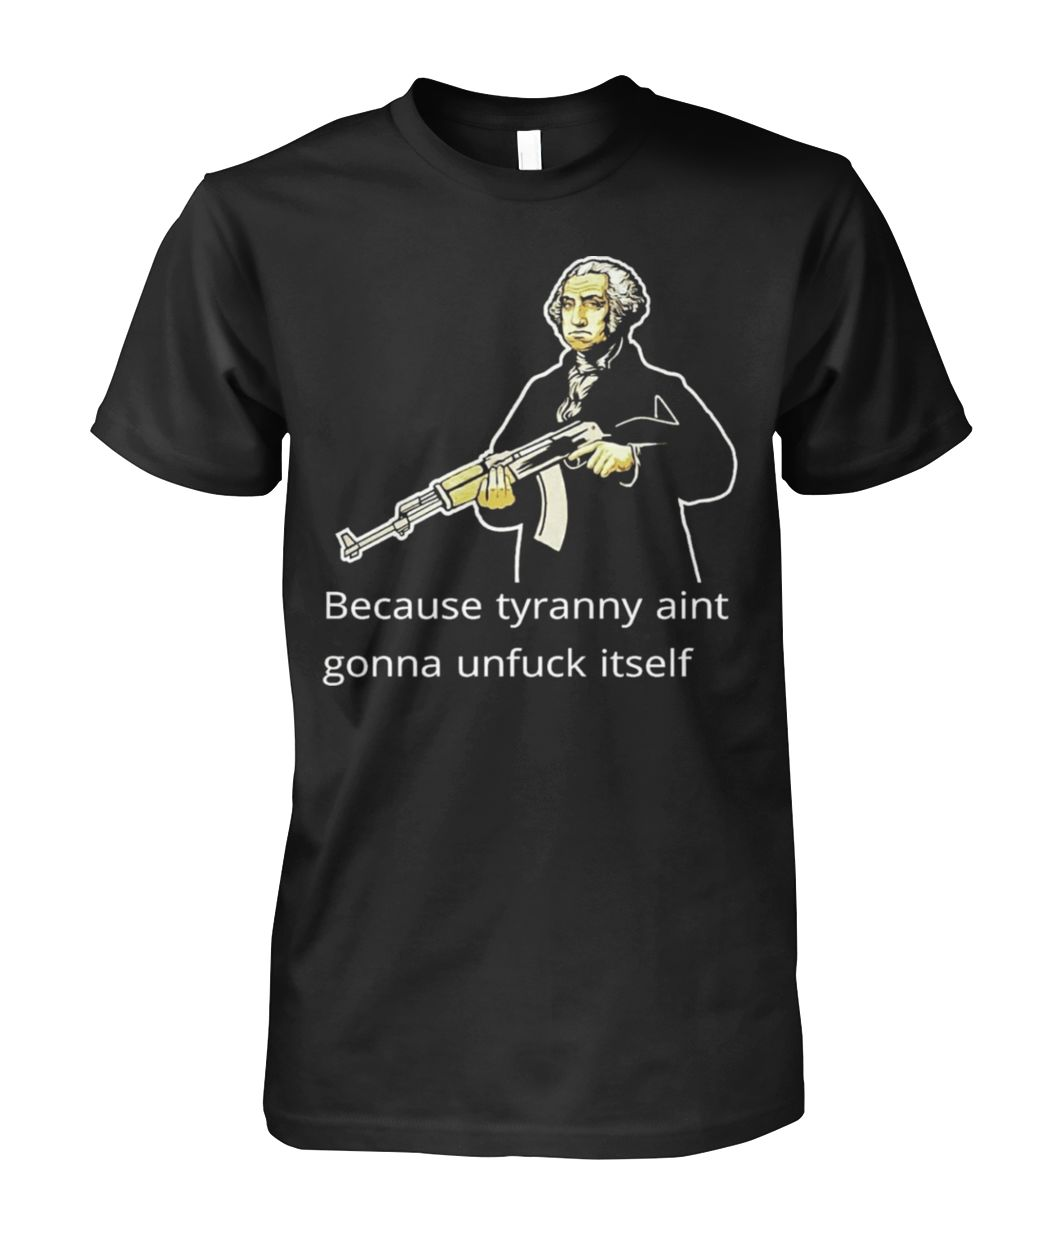 Because Tyranny Aint Gonna Unfuck Itself - Washington Tee Unisex Cotton Tee